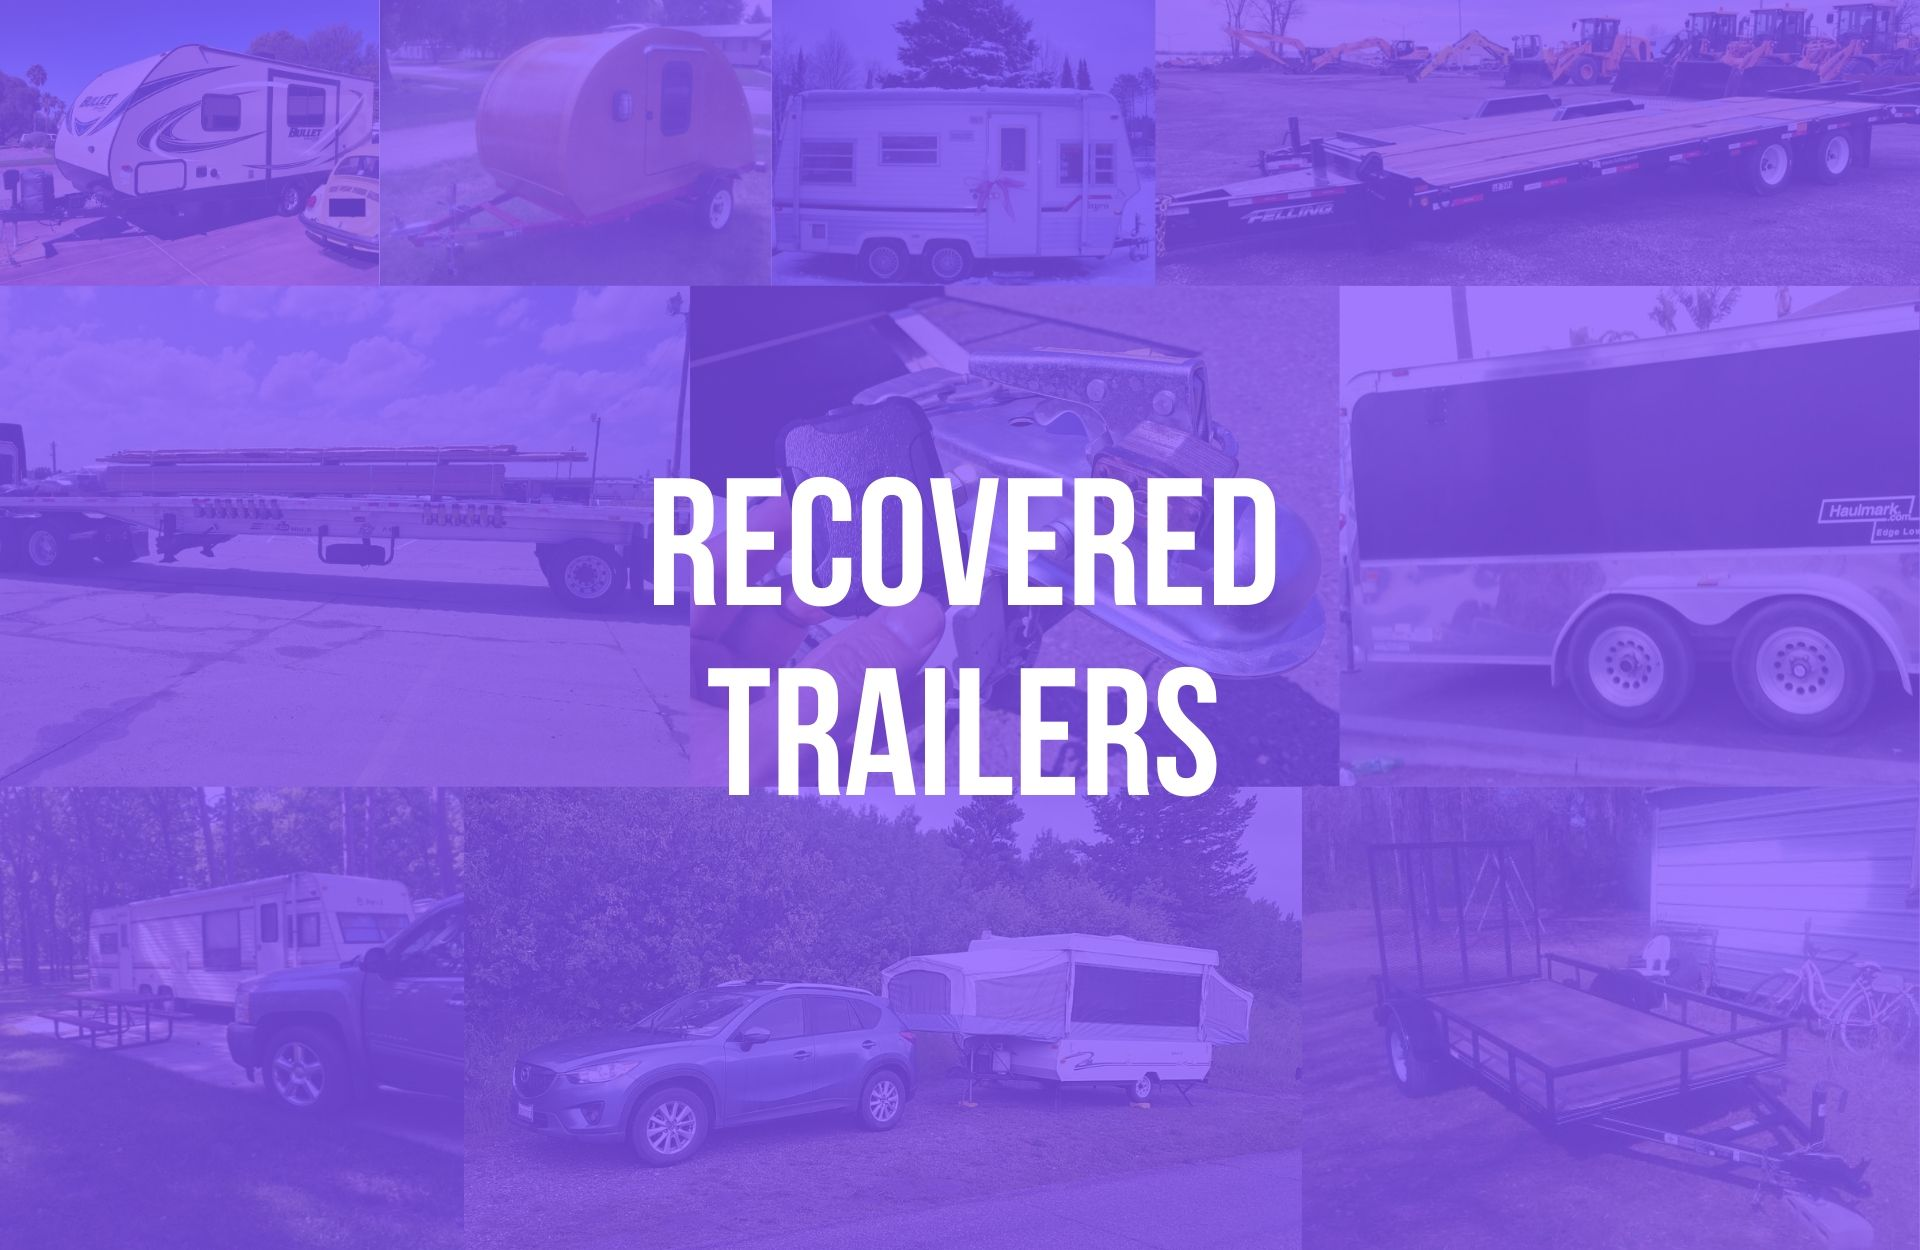 Stolen 911 Recovered Trailers